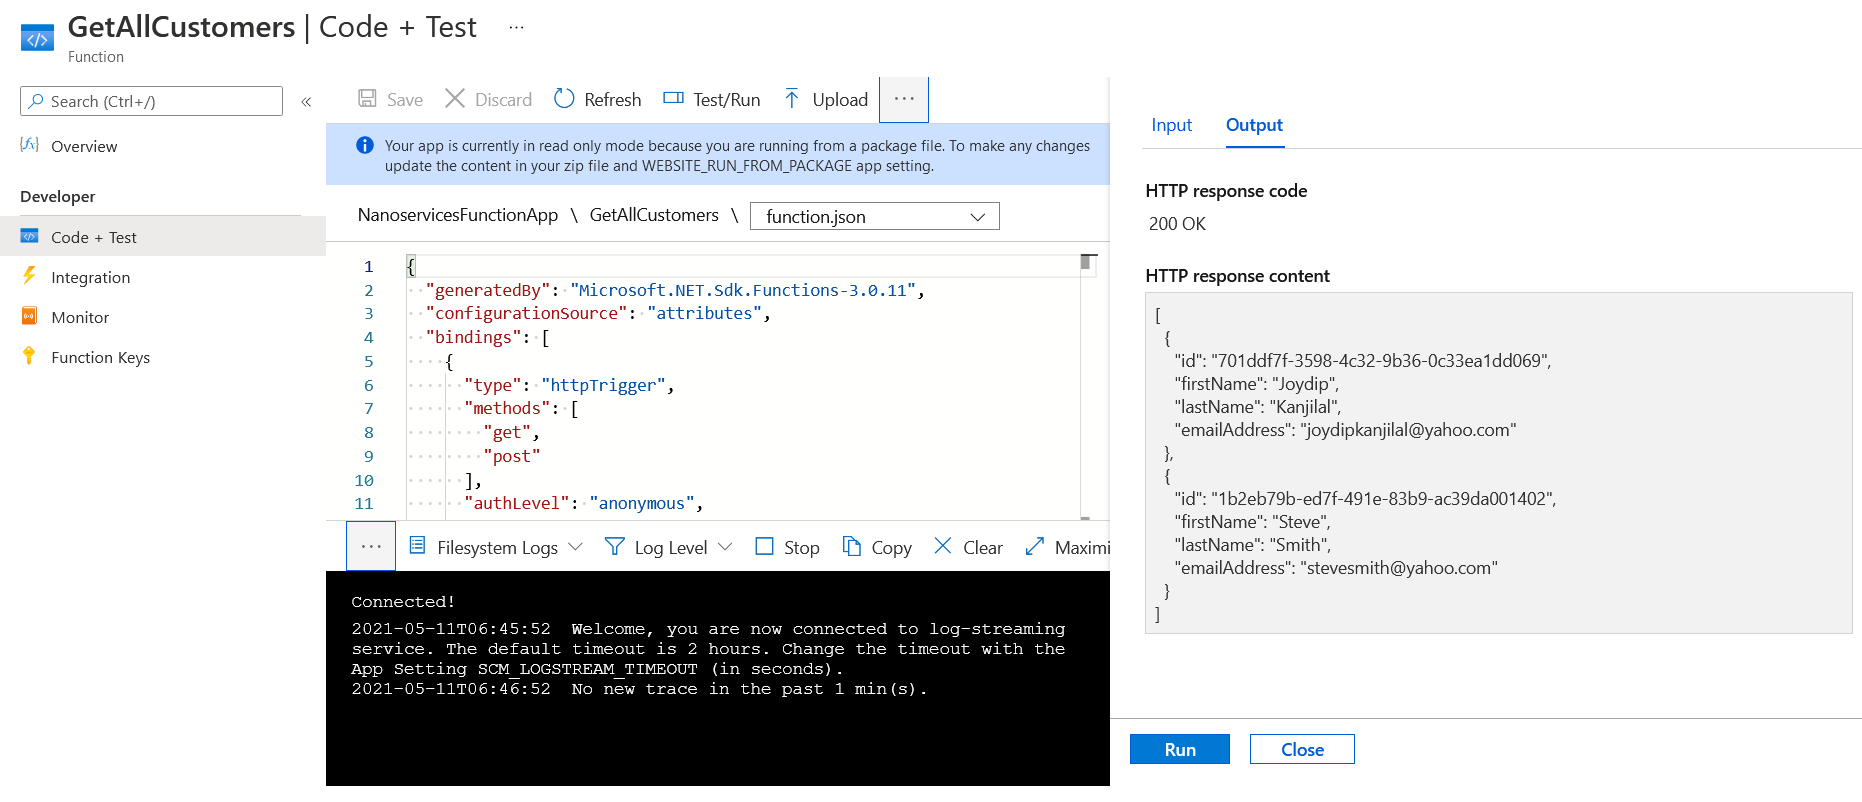 Testing the Azure Function